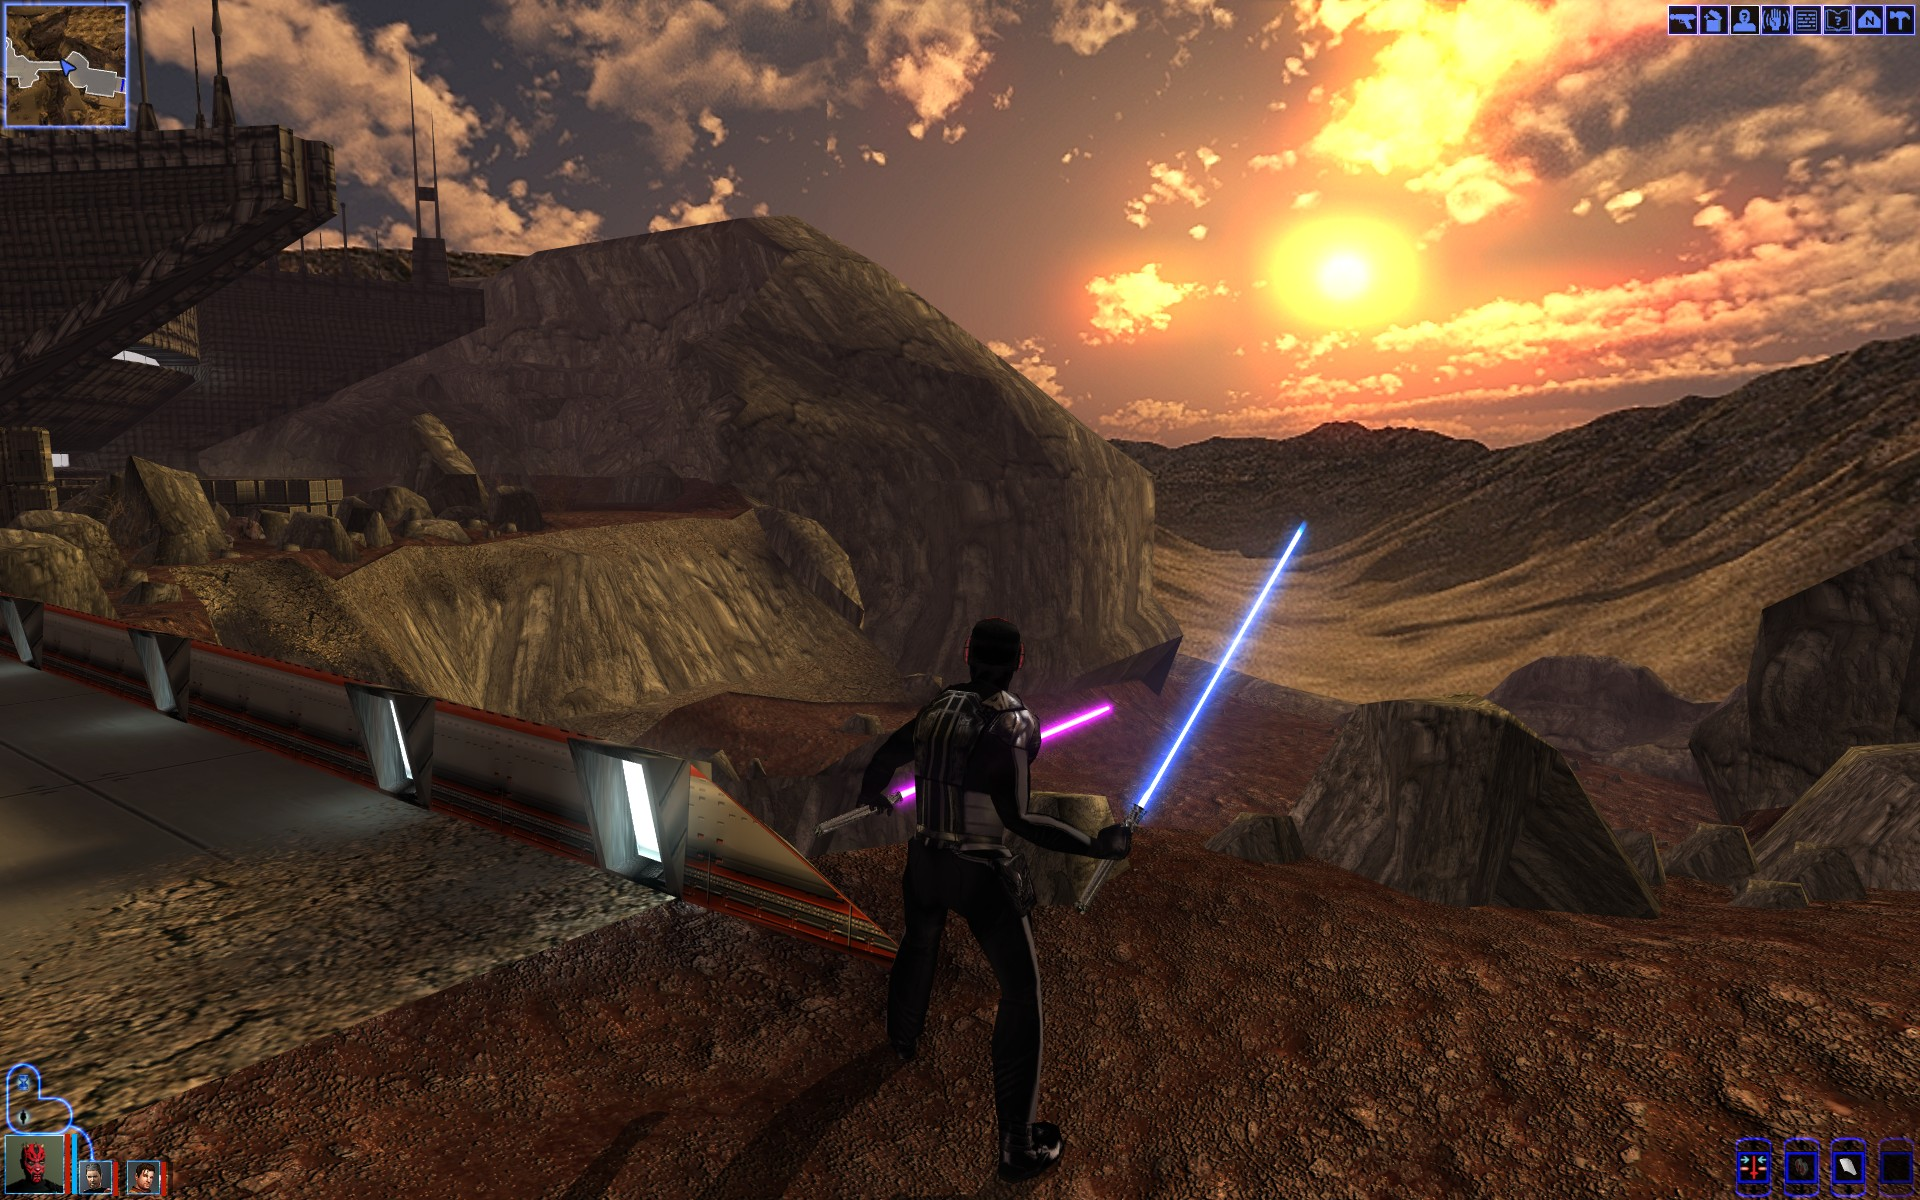 KOTOR - Feature Images - Images - Gamepedia